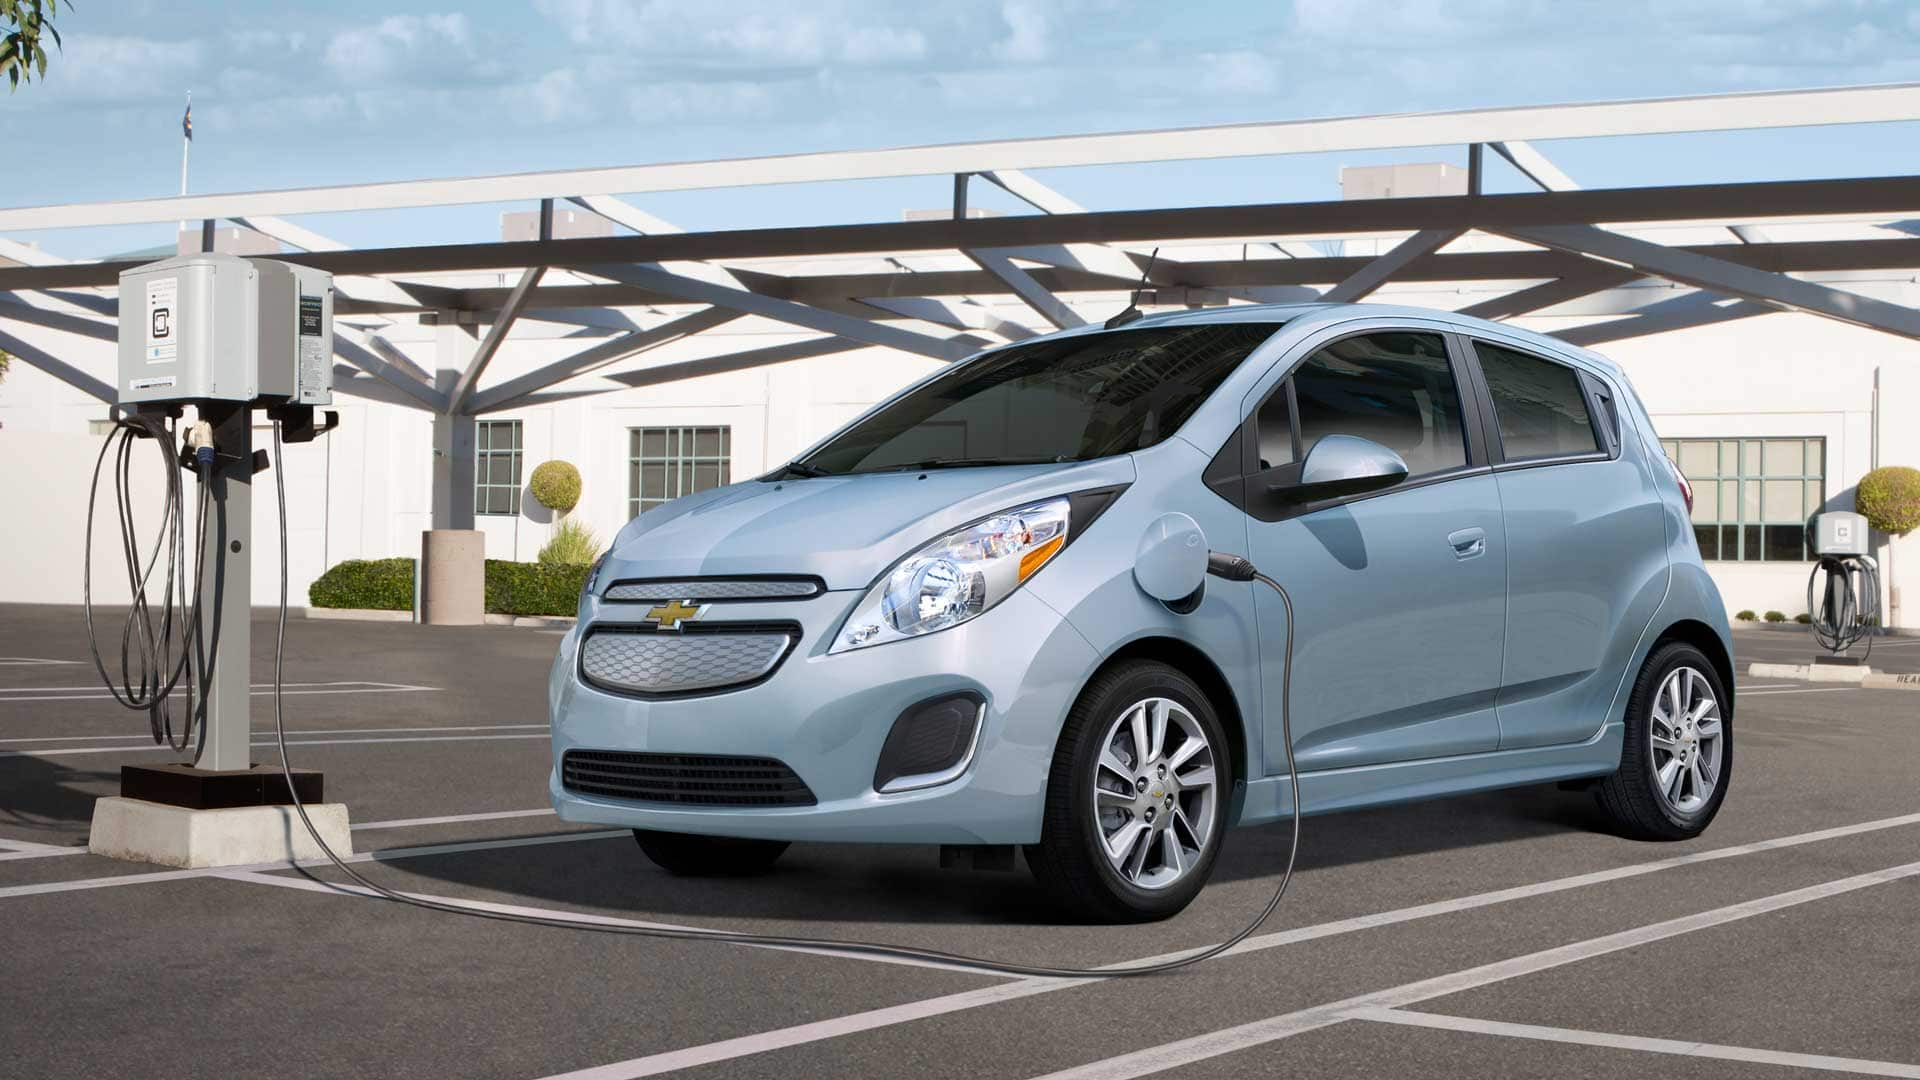 2014 chevrolet spark electric vehicle ev launches this summer greener ideal. Black Bedroom Furniture Sets. Home Design Ideas